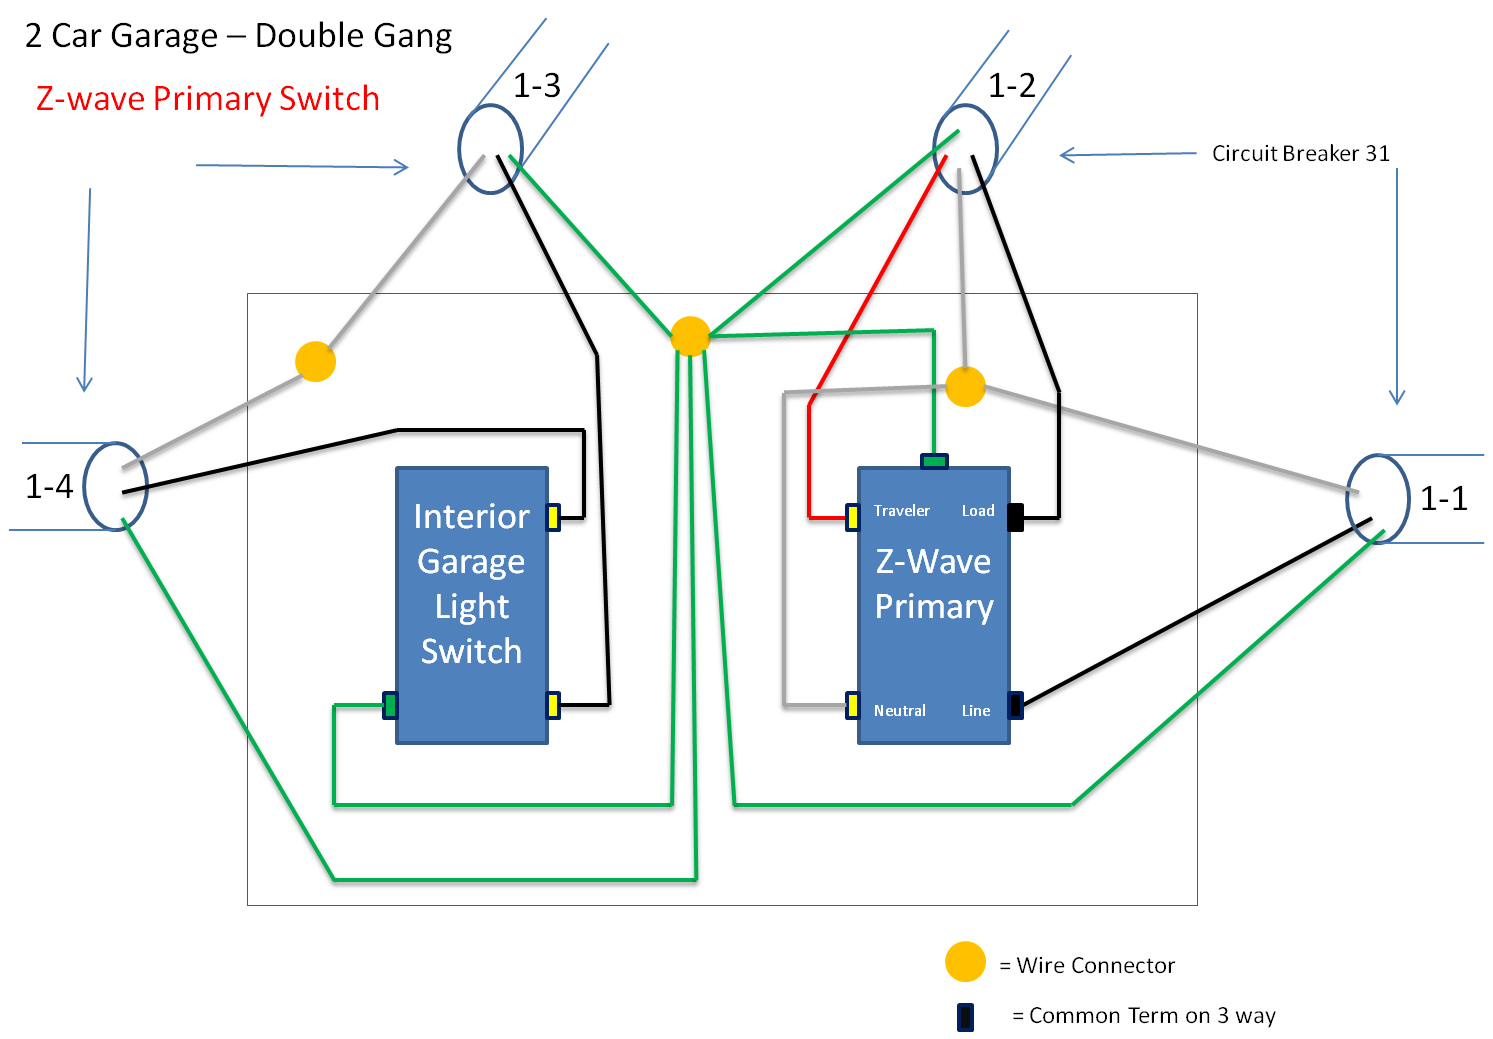 Wiring 3 Way Z Wave Diagram Schemes Lighting Circuit On Trying To Wire In A Ge 45614 Light Switch Kit Home Is Rh Justanswer Com Methods Multiple Lights